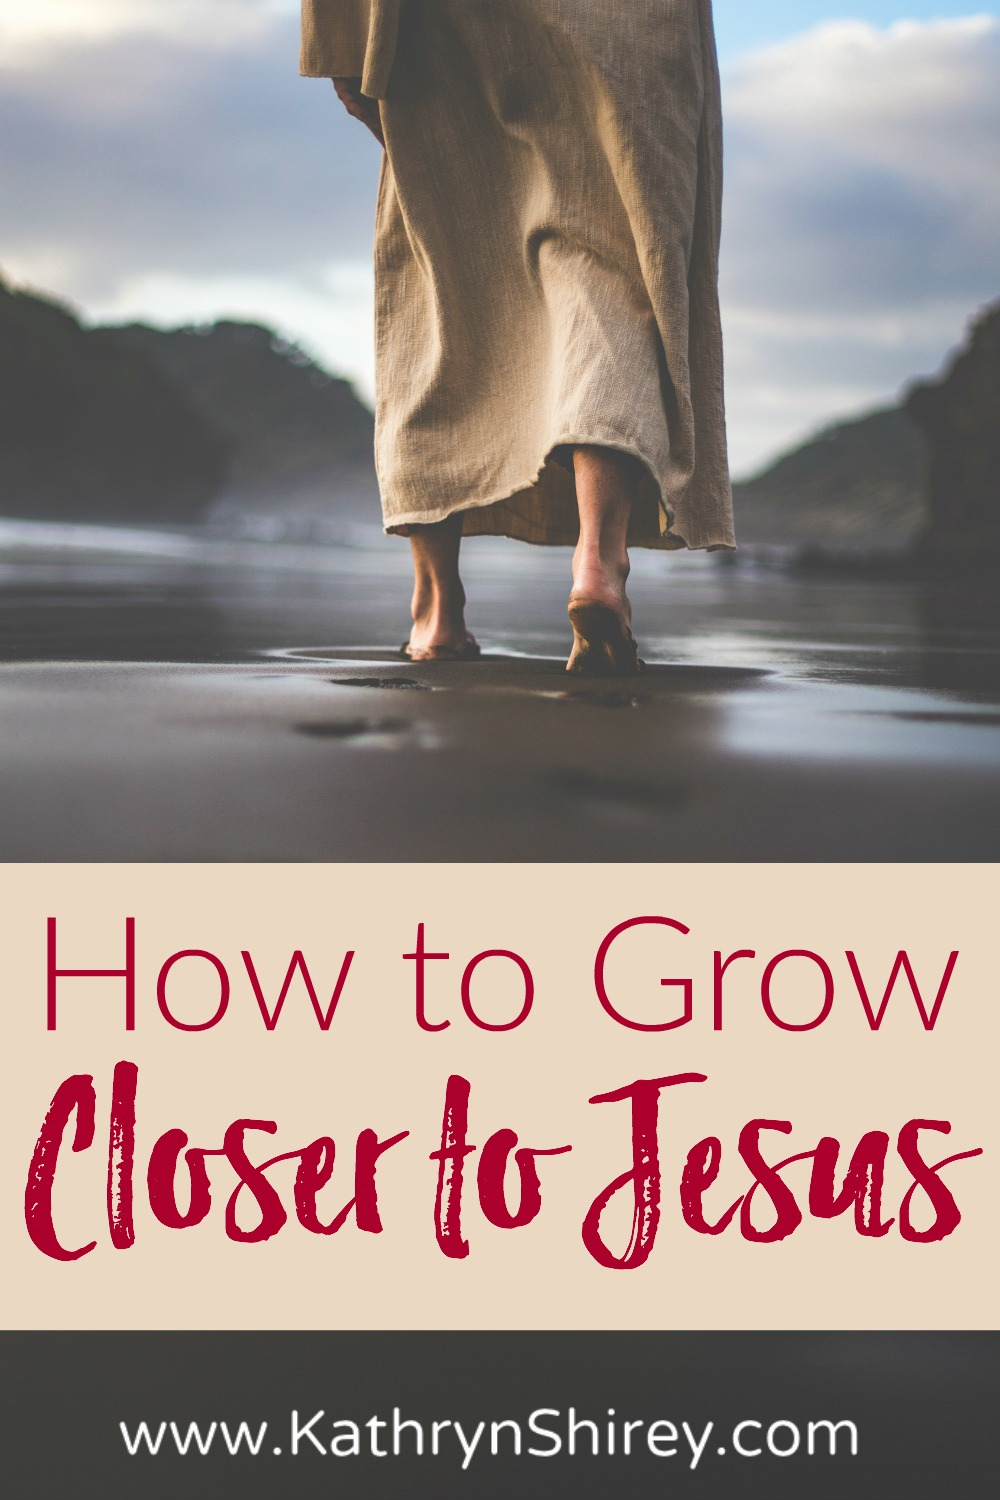 Who is by your side when life gets hard? Knowing Jesus personally and keeping him close will bring peace in the storms. Learn 5 ways how to get closer to Jesus. #TrustGod #Jesus